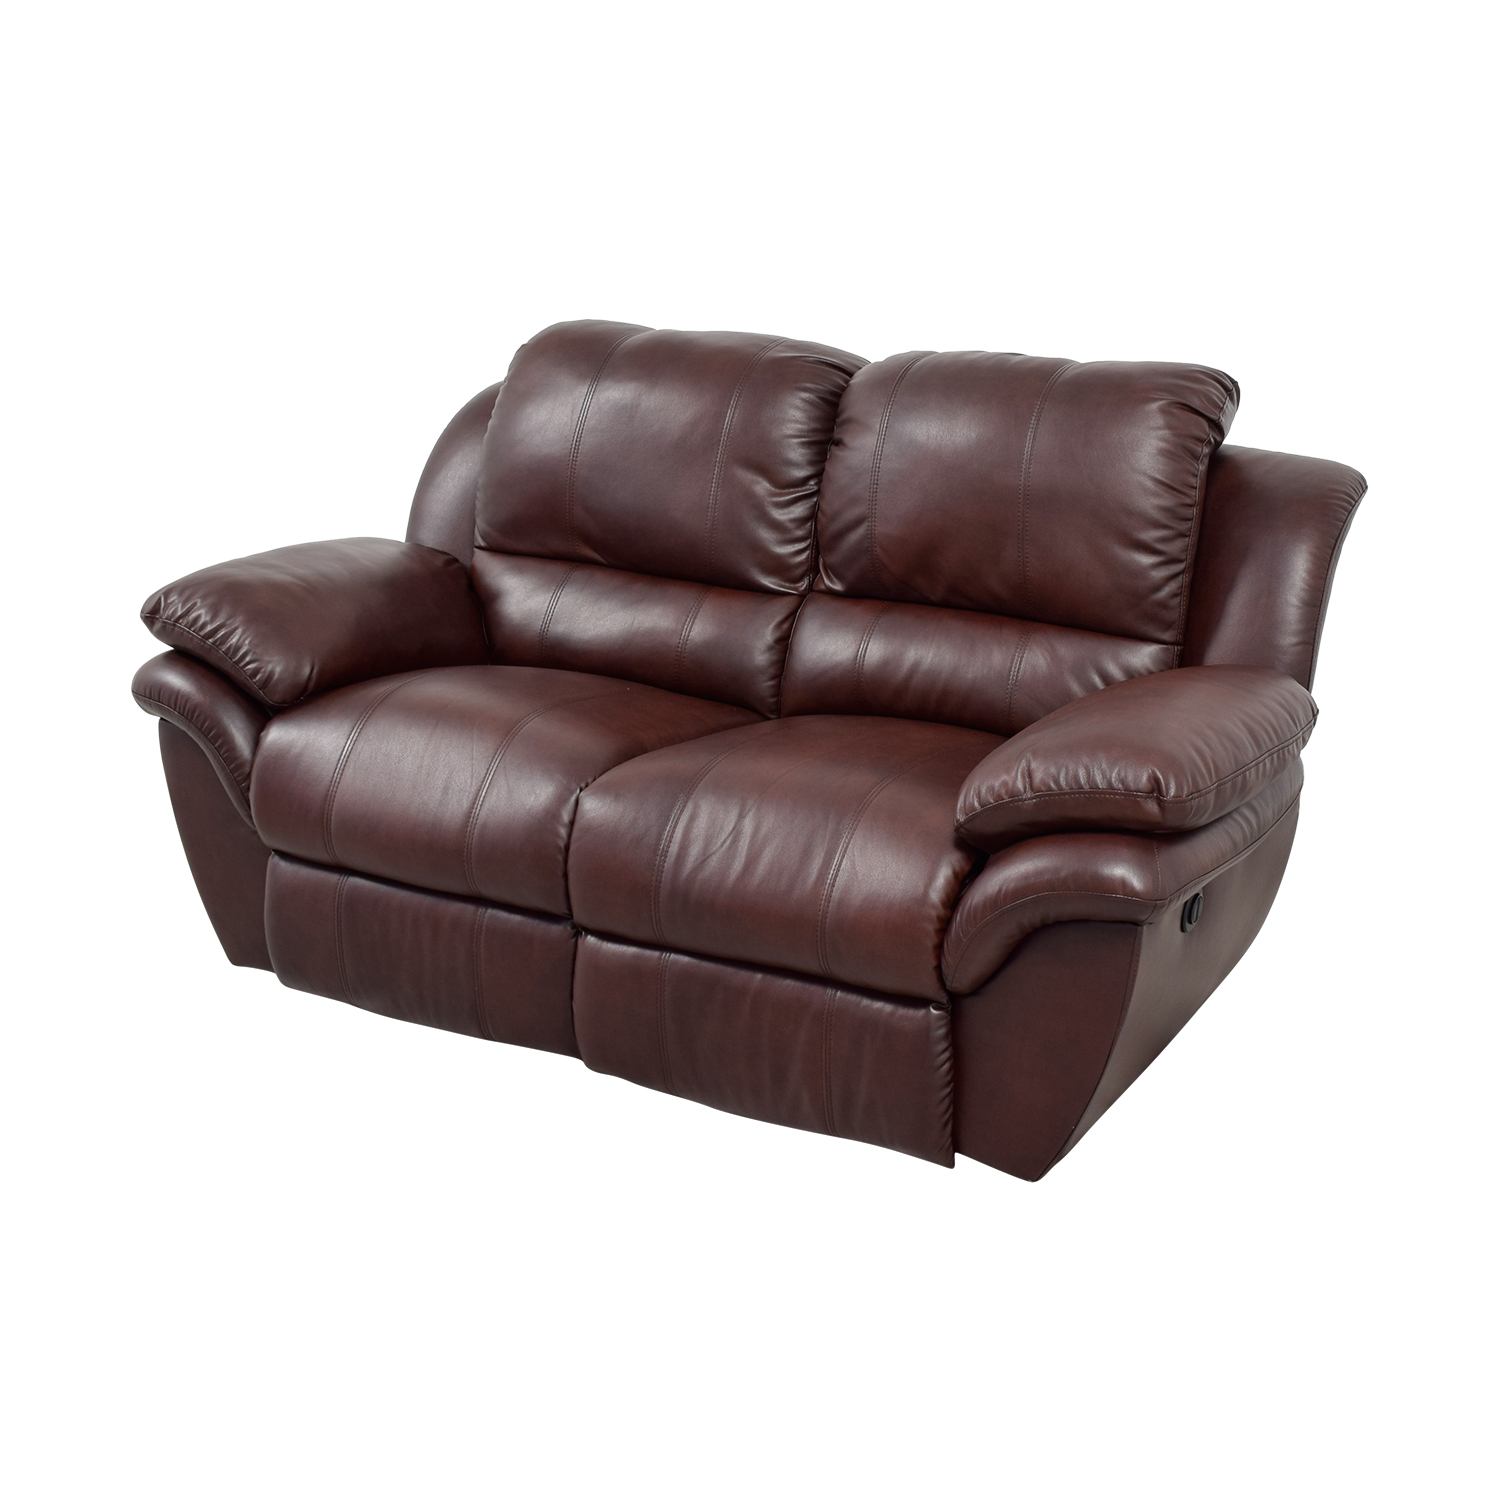 78 OFF  Bobs Furniture Bobs Furniture Brown Leather